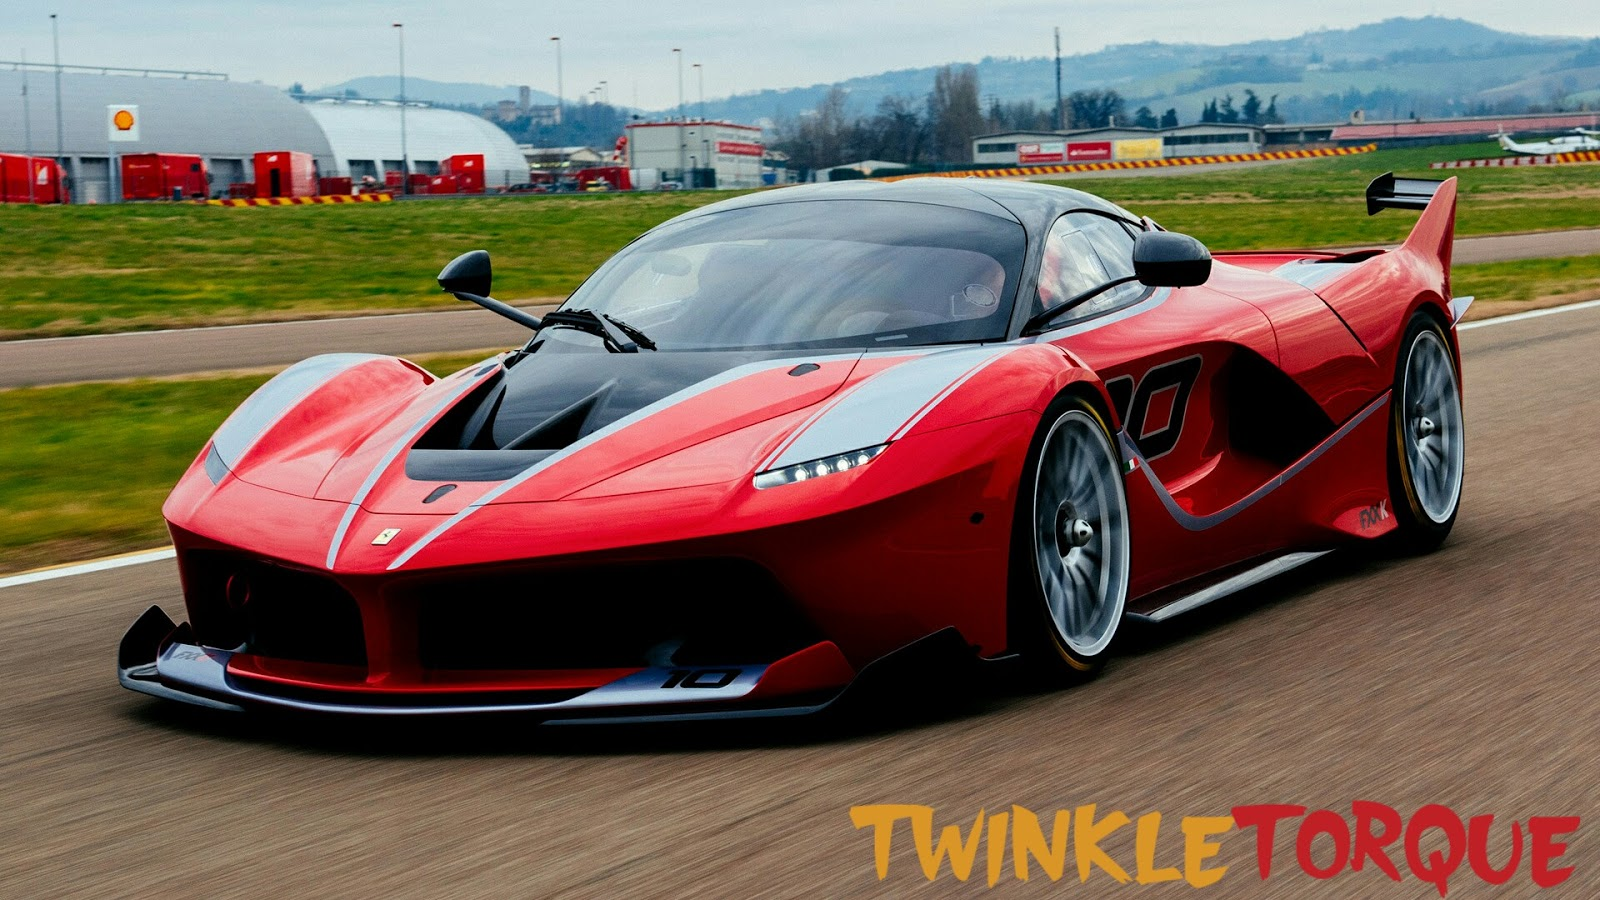 Most Expensive Car In The World Twinkle Torque